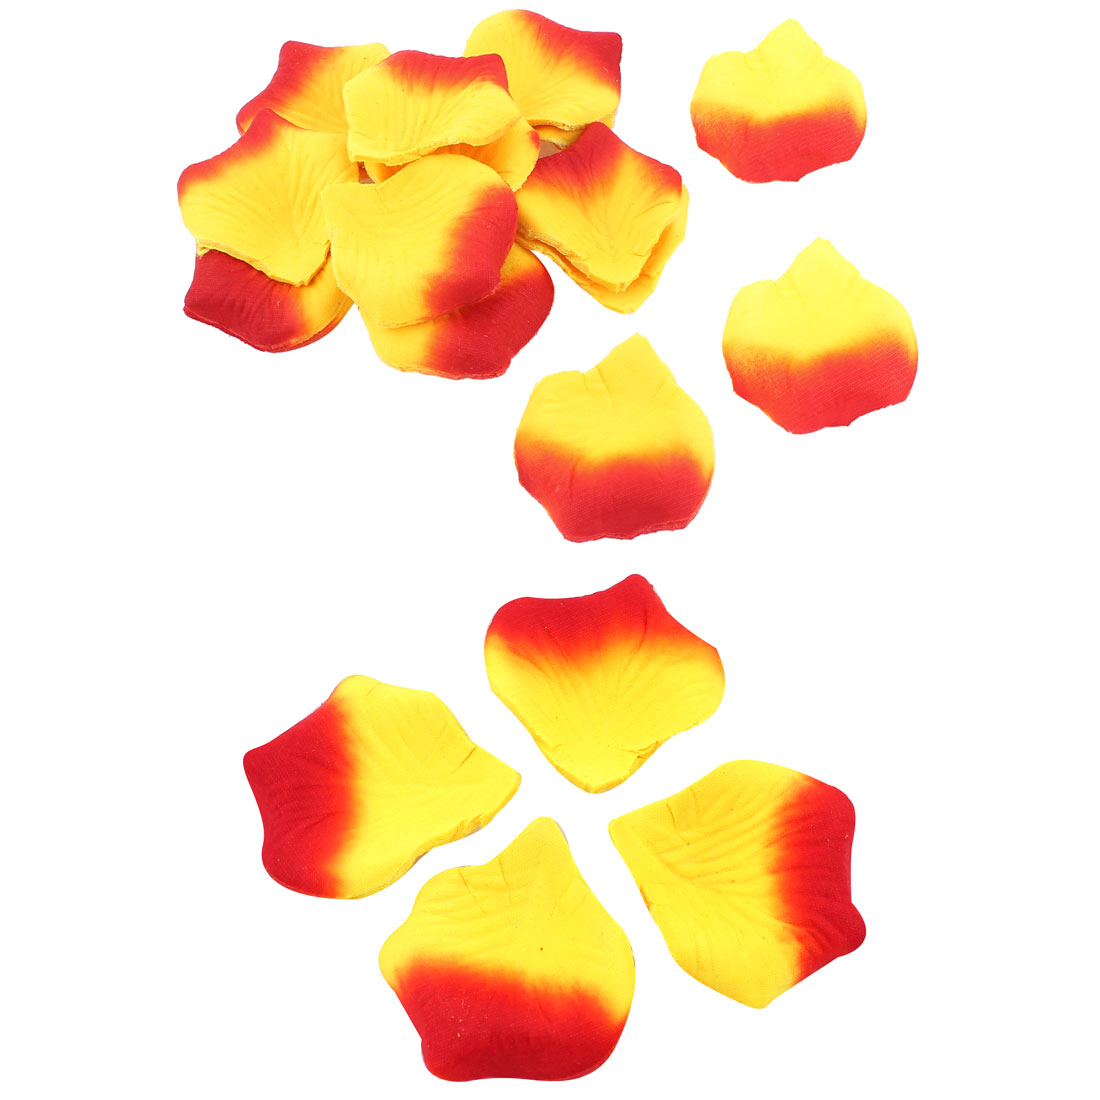 200 Pcs Wedding Festival House Accent Artificial Fabric Rose Petals Yellow Red